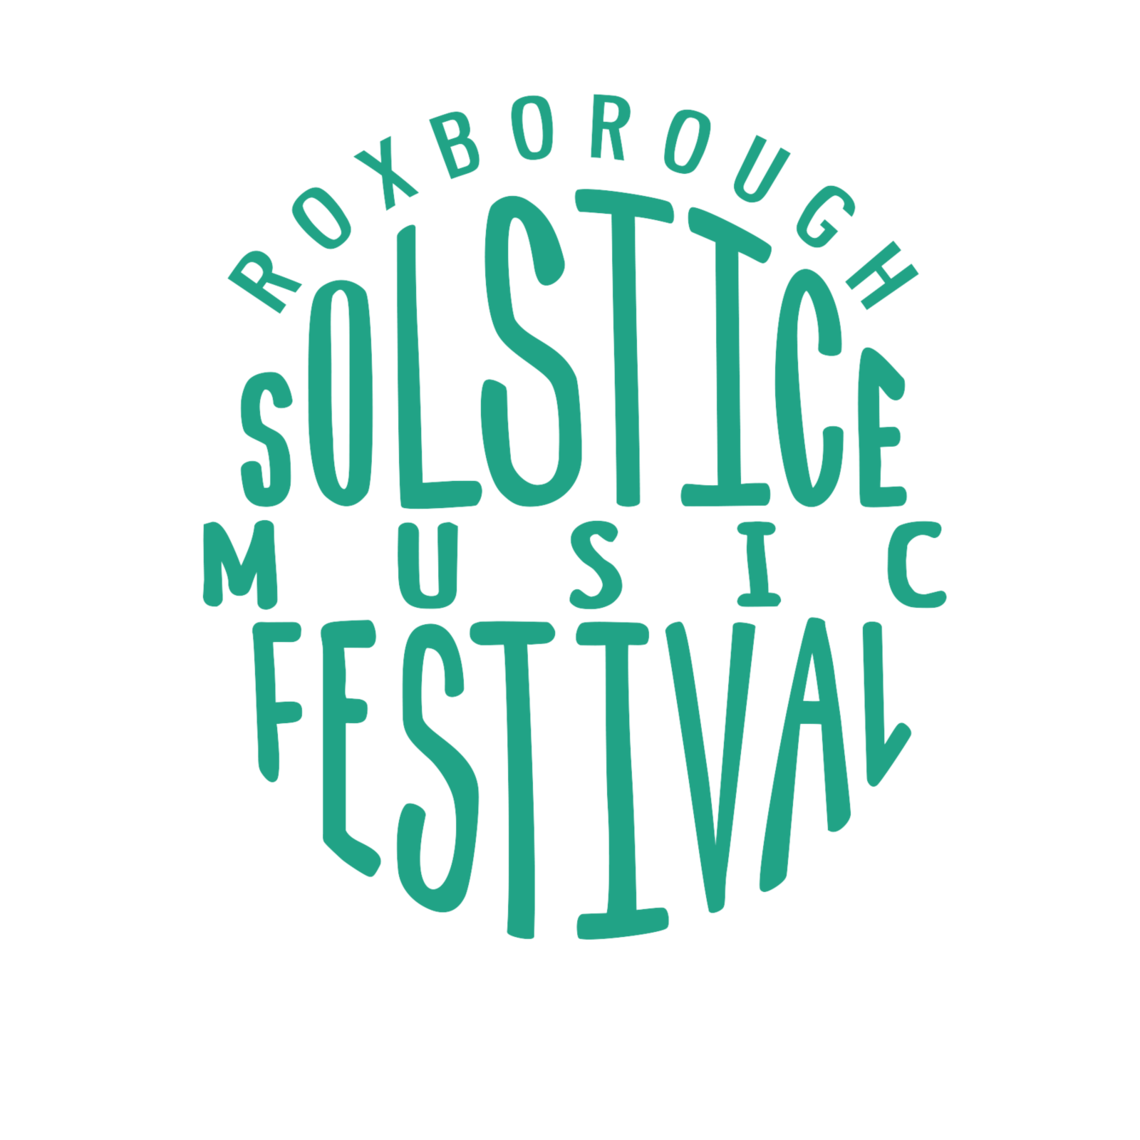 Photo: roxborough solstice music festival logo